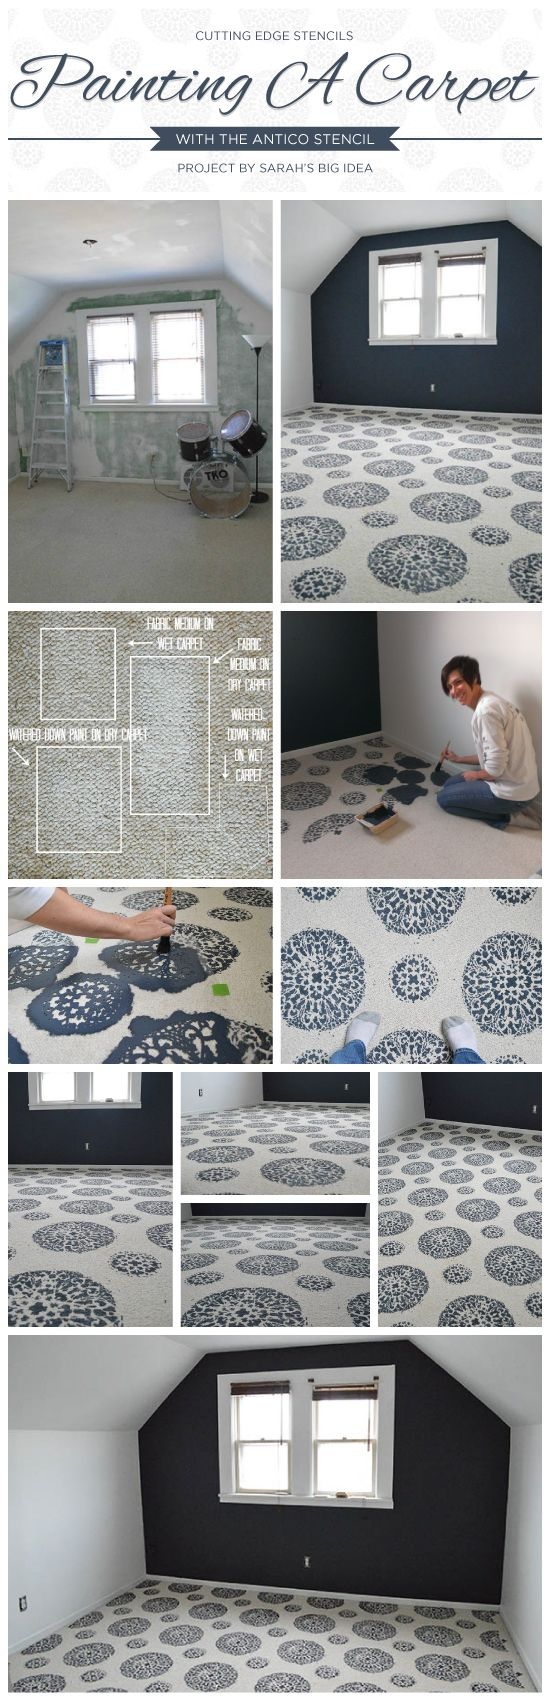 Cutting Edge Stencils shares a DIY painted carpet using the Antico Allover stencil pattern. http://www.cuttingedgestencils.com/antico-allover-wall-pattern.html #stenciling #painting #carpet